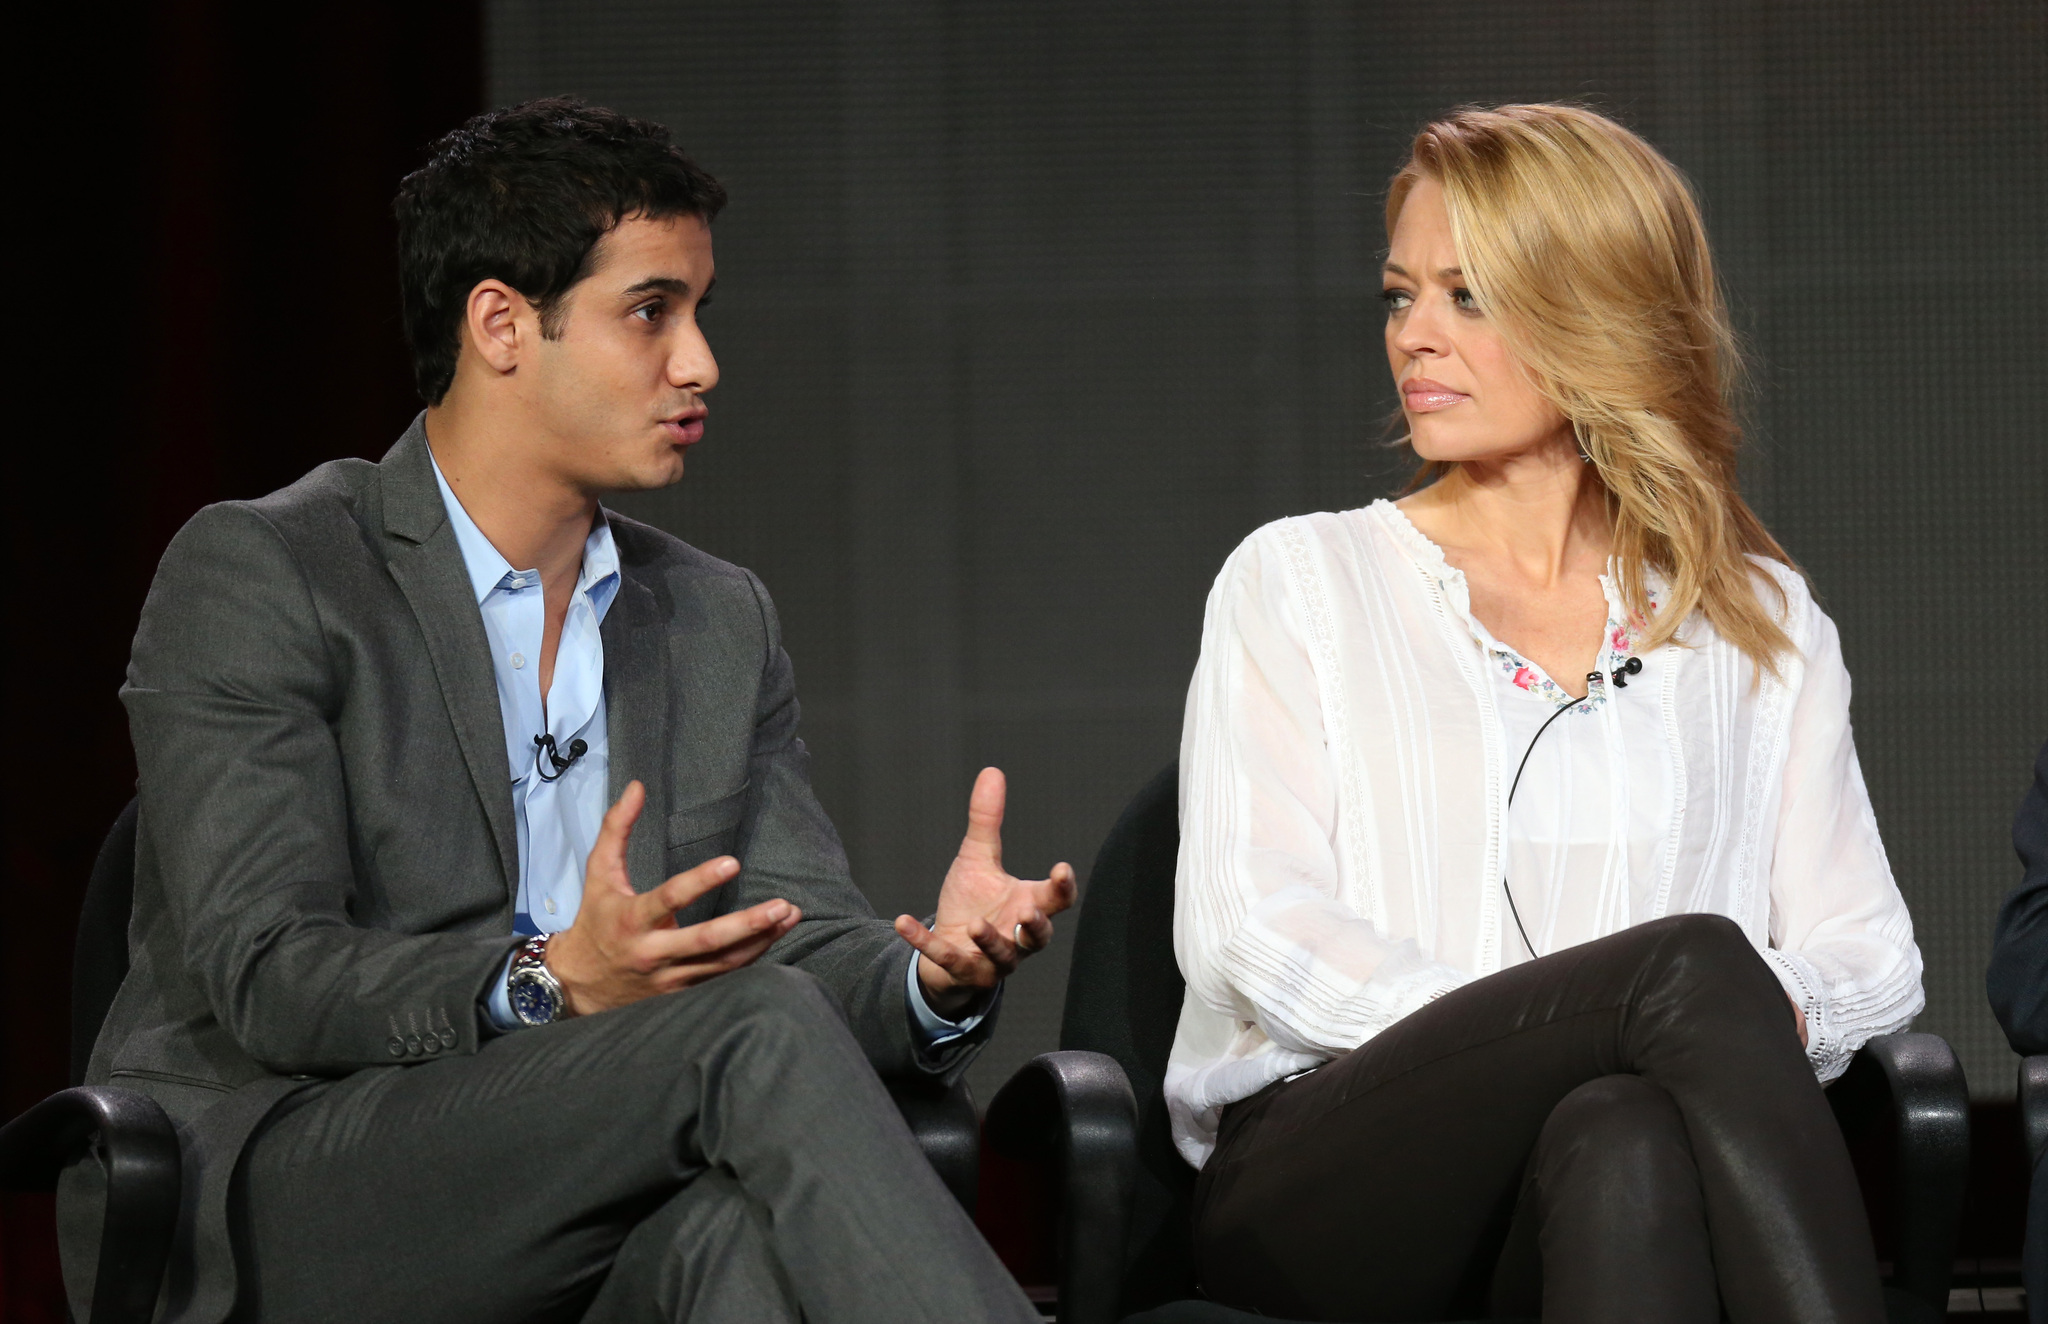 Jeri Ryan and Elyes Gabel at an event for Body of Proof (2011)